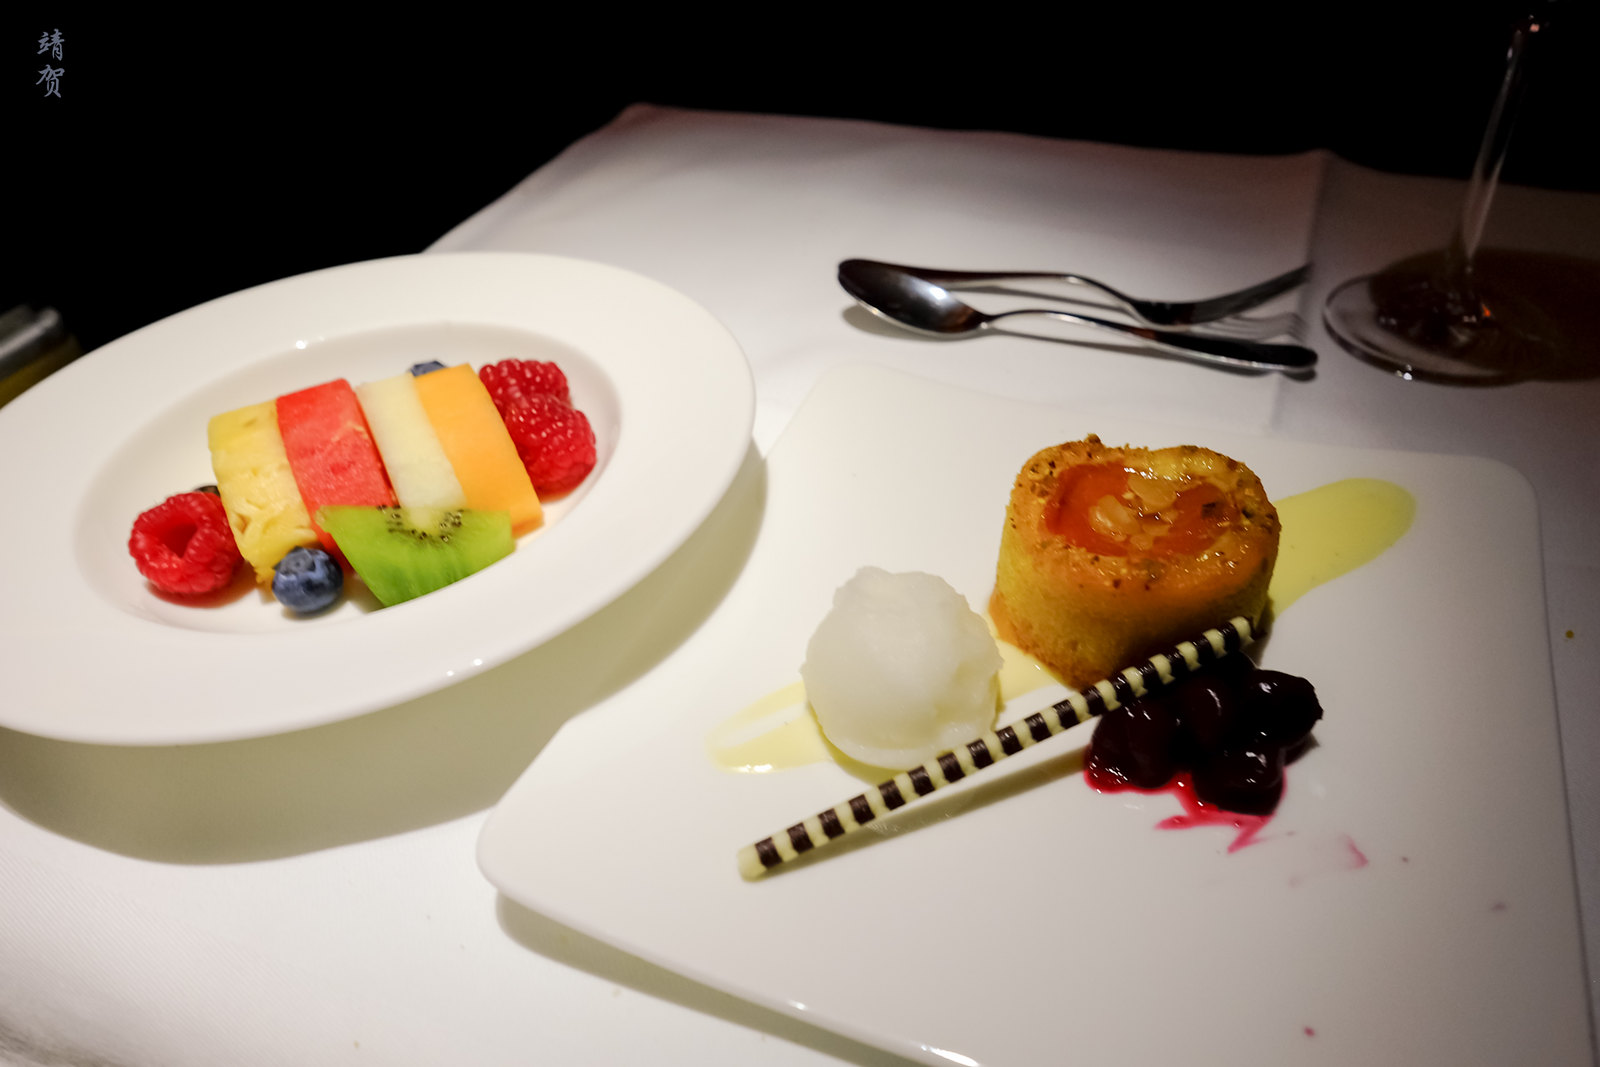 Fruit plate and dessert